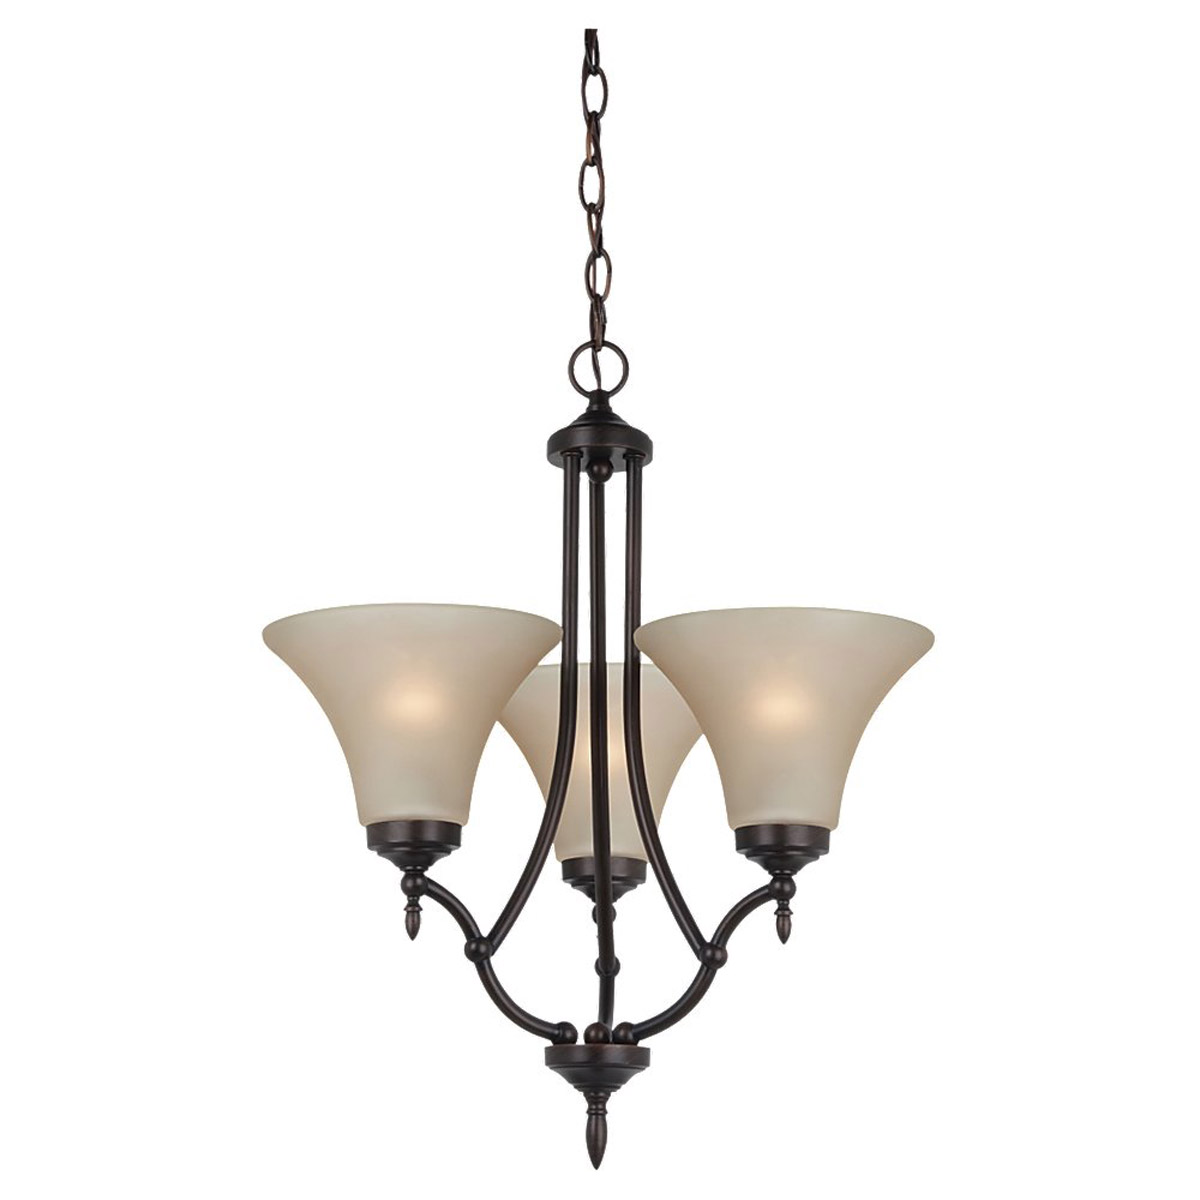 Sea Gull Lighting Montreal 3 Light Chandelier in Burnt Sienna 31180-710